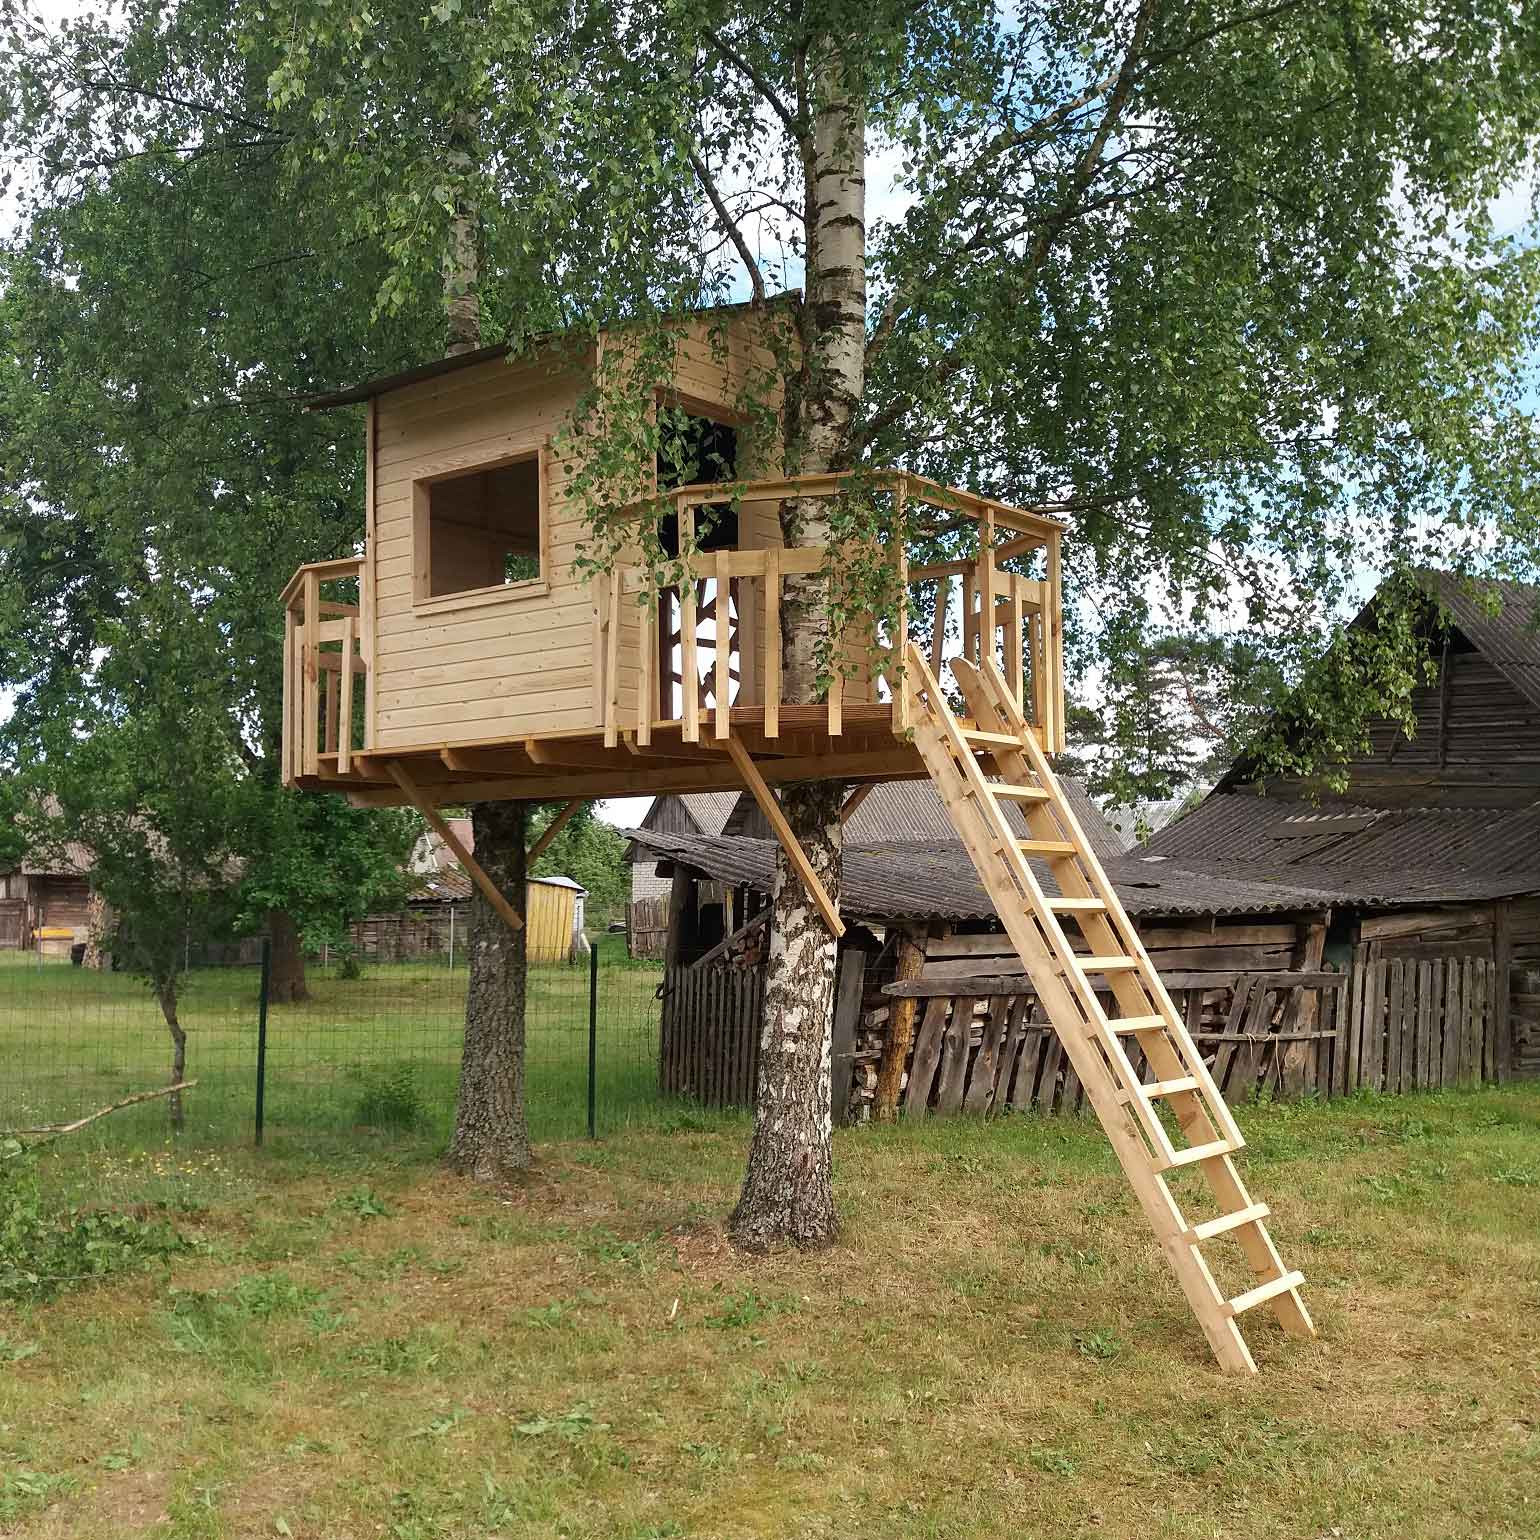 Best ideas about DIY Treehouse Kits . Save or Pin Two Birches treehouse DIY kit – Houseintree Now.